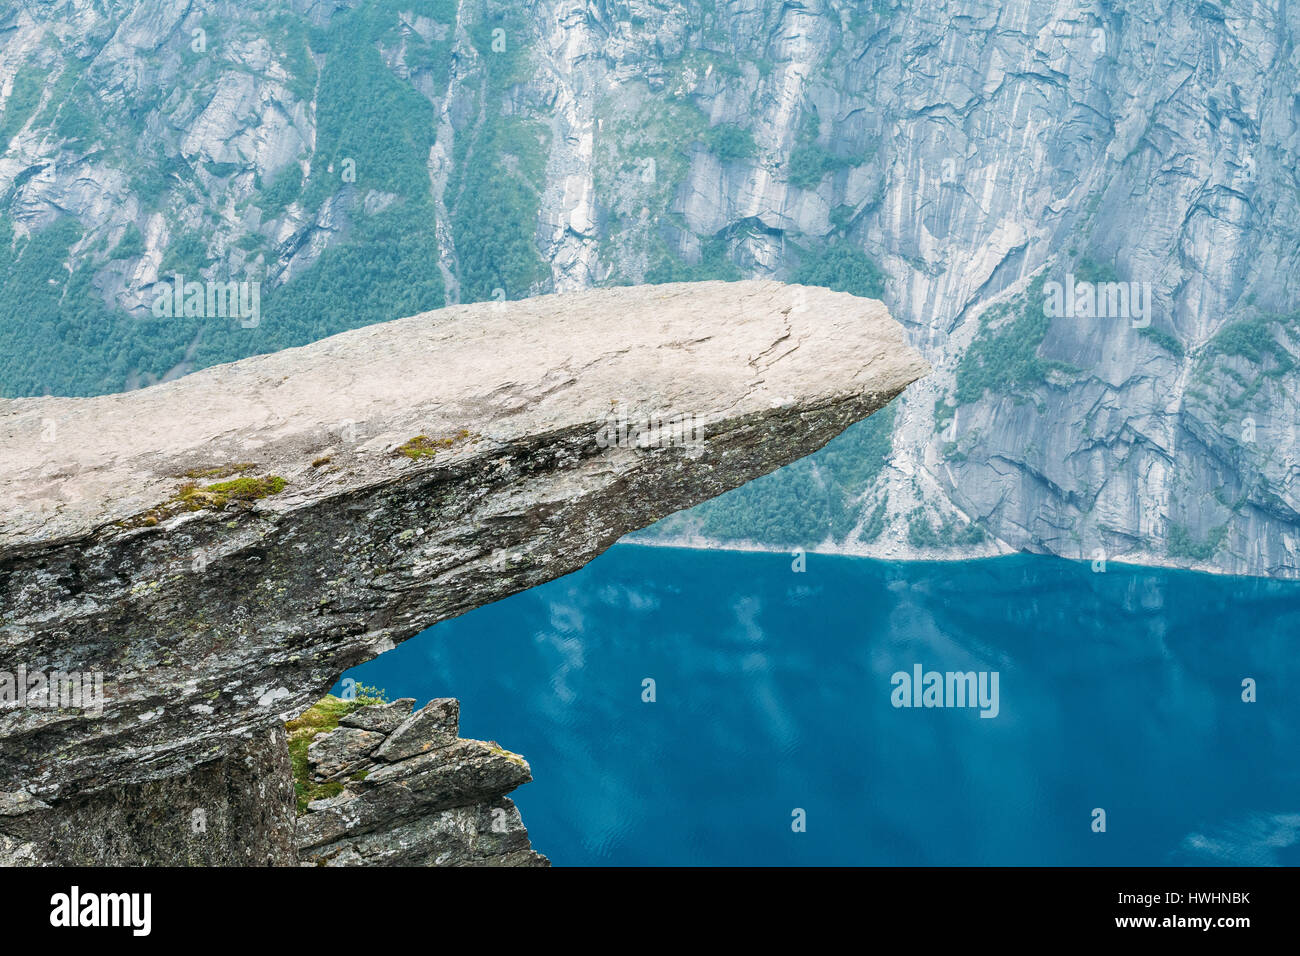 Scenic View Of Rock Trolltunga - Troll Tongue In Norway. Rock In The Mountains Of Norway. Natural Attractions Landmark Stock Photo